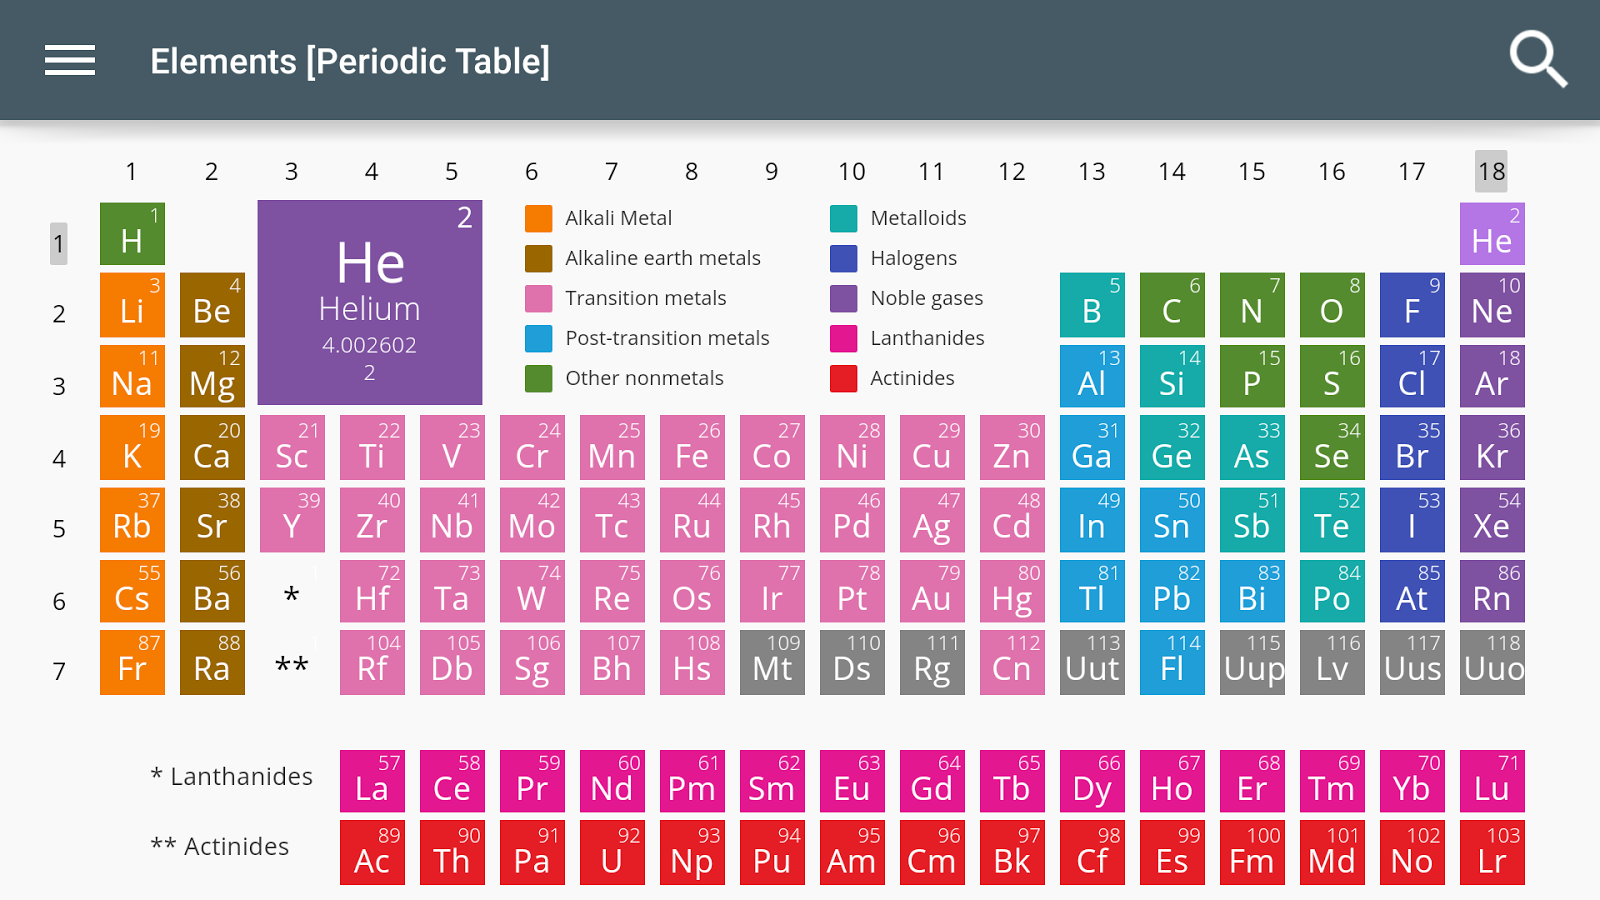 Elements periodic table android apps on google play elements periodic table screenshot gamestrikefo Images